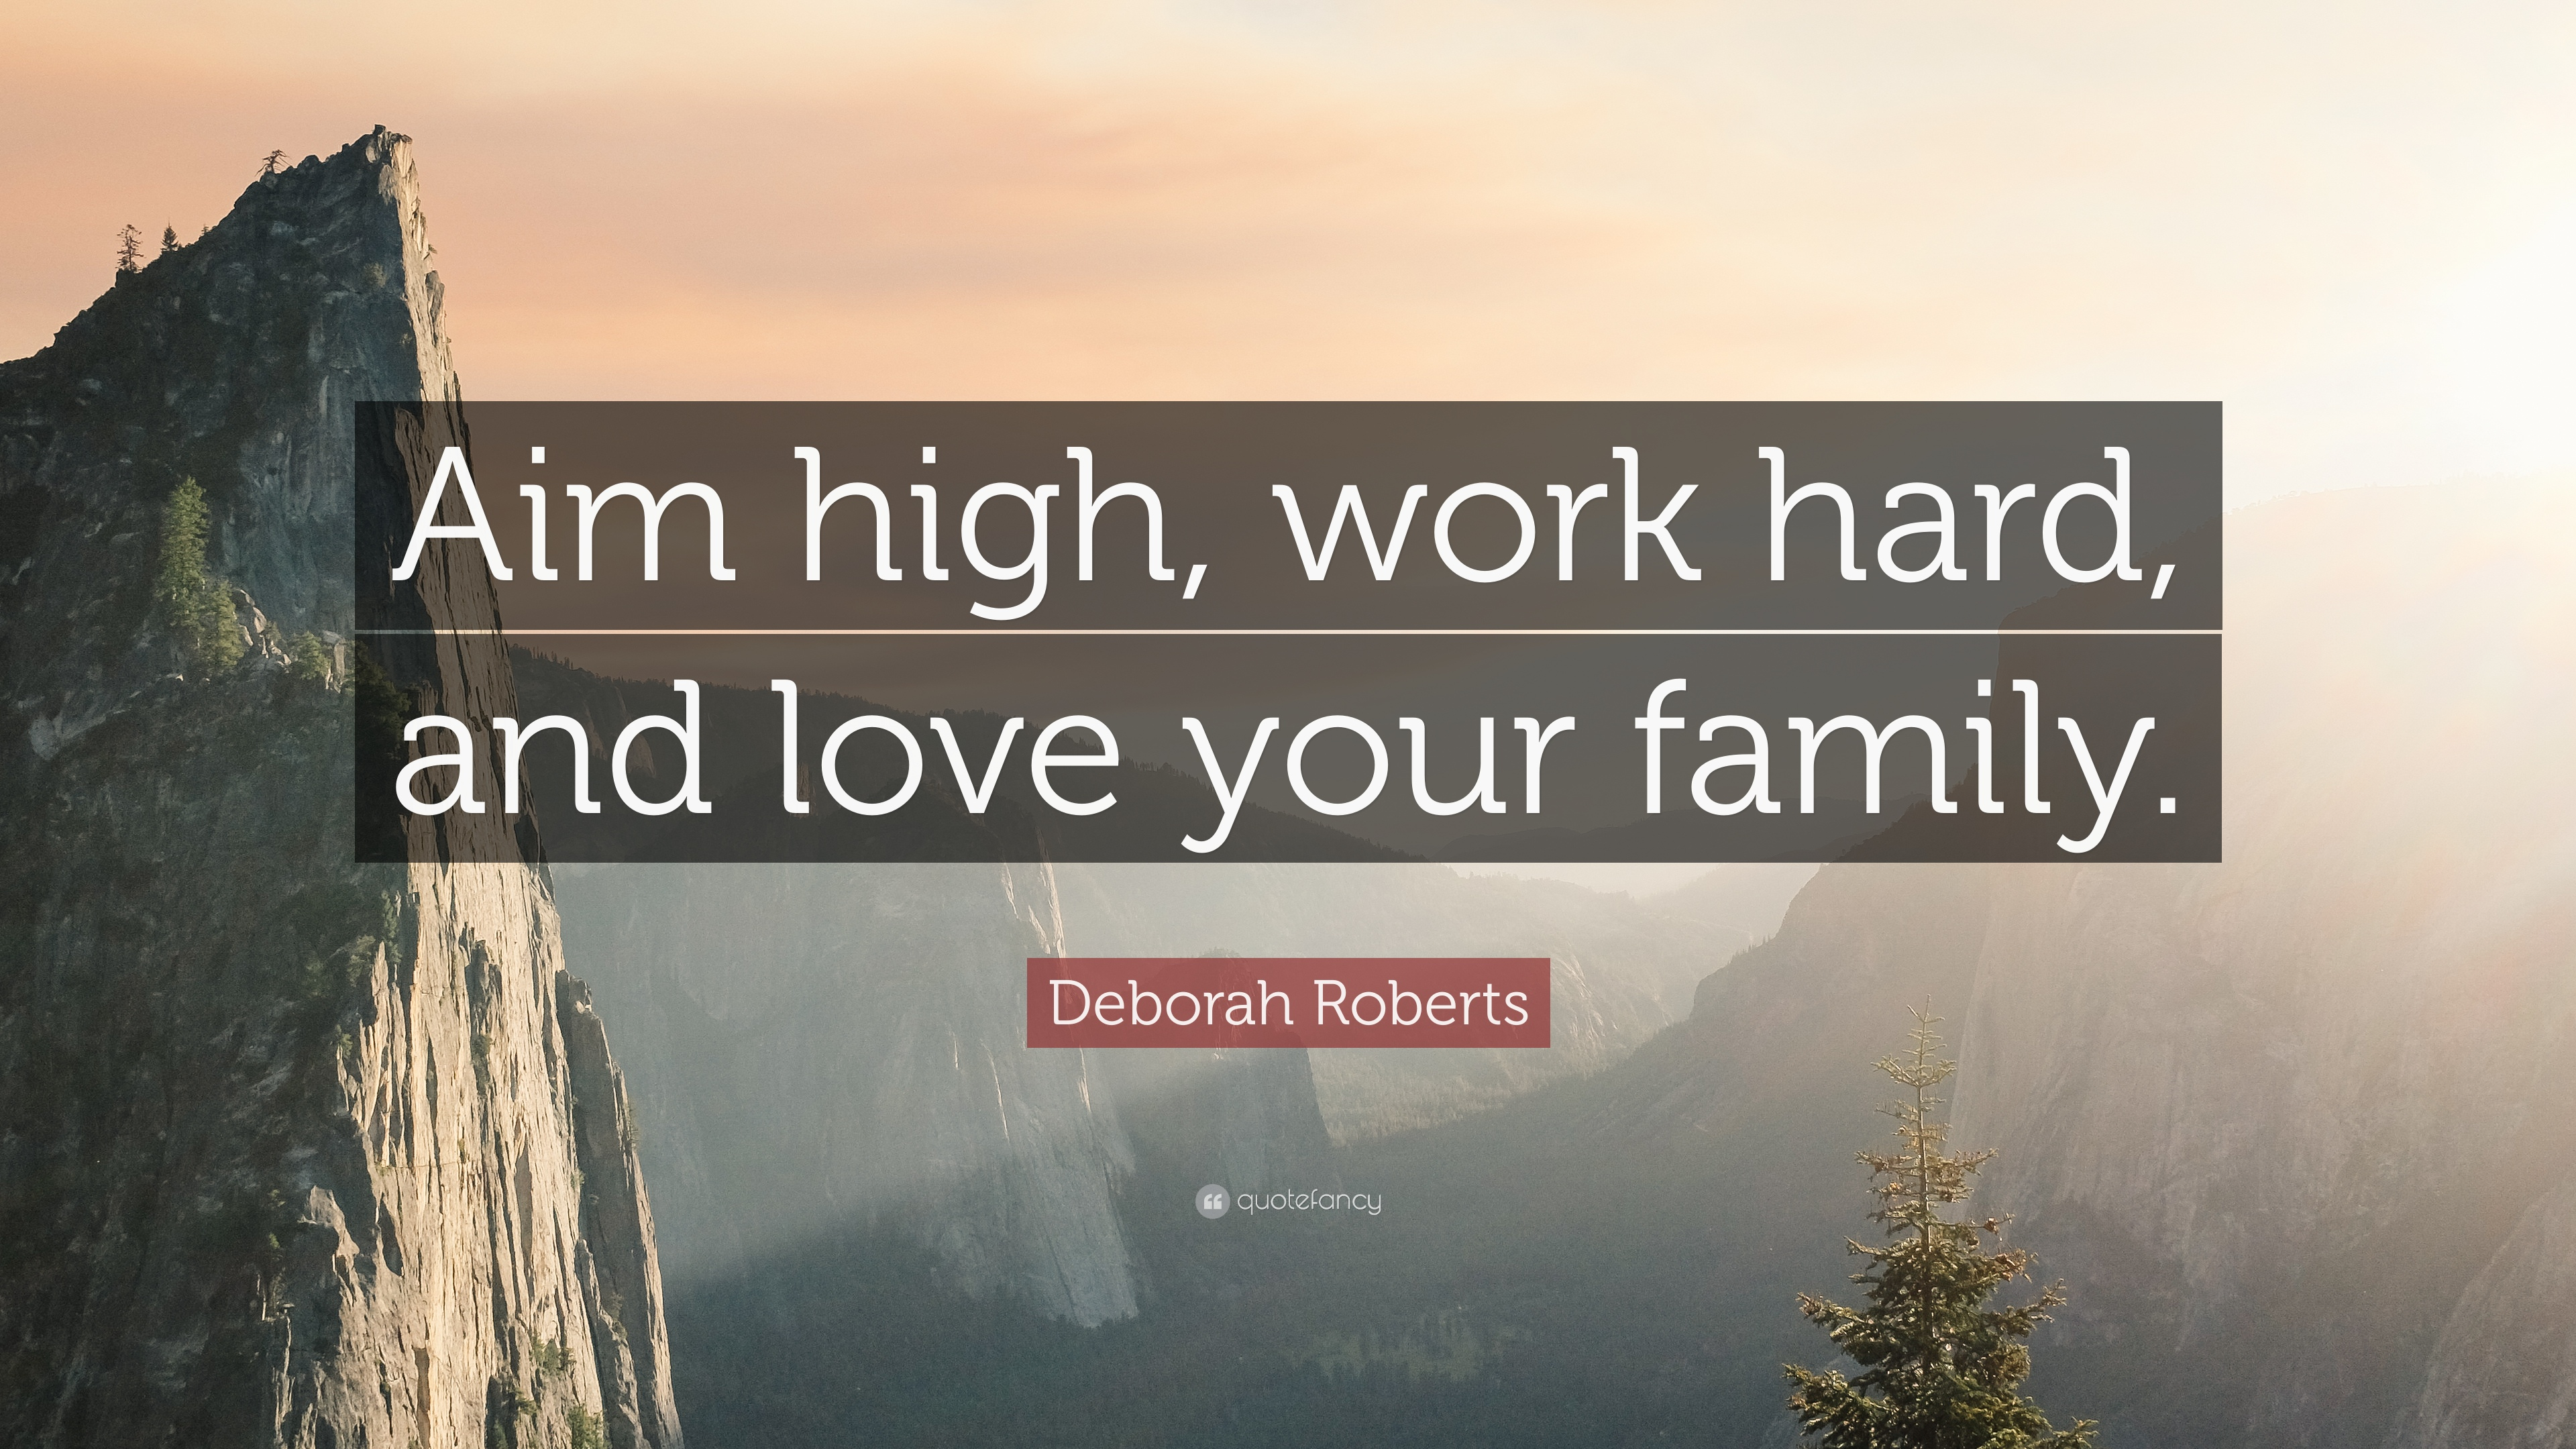 Good Family Quotes: U201cAim High, Work Hard, And Love Your Family.u201d